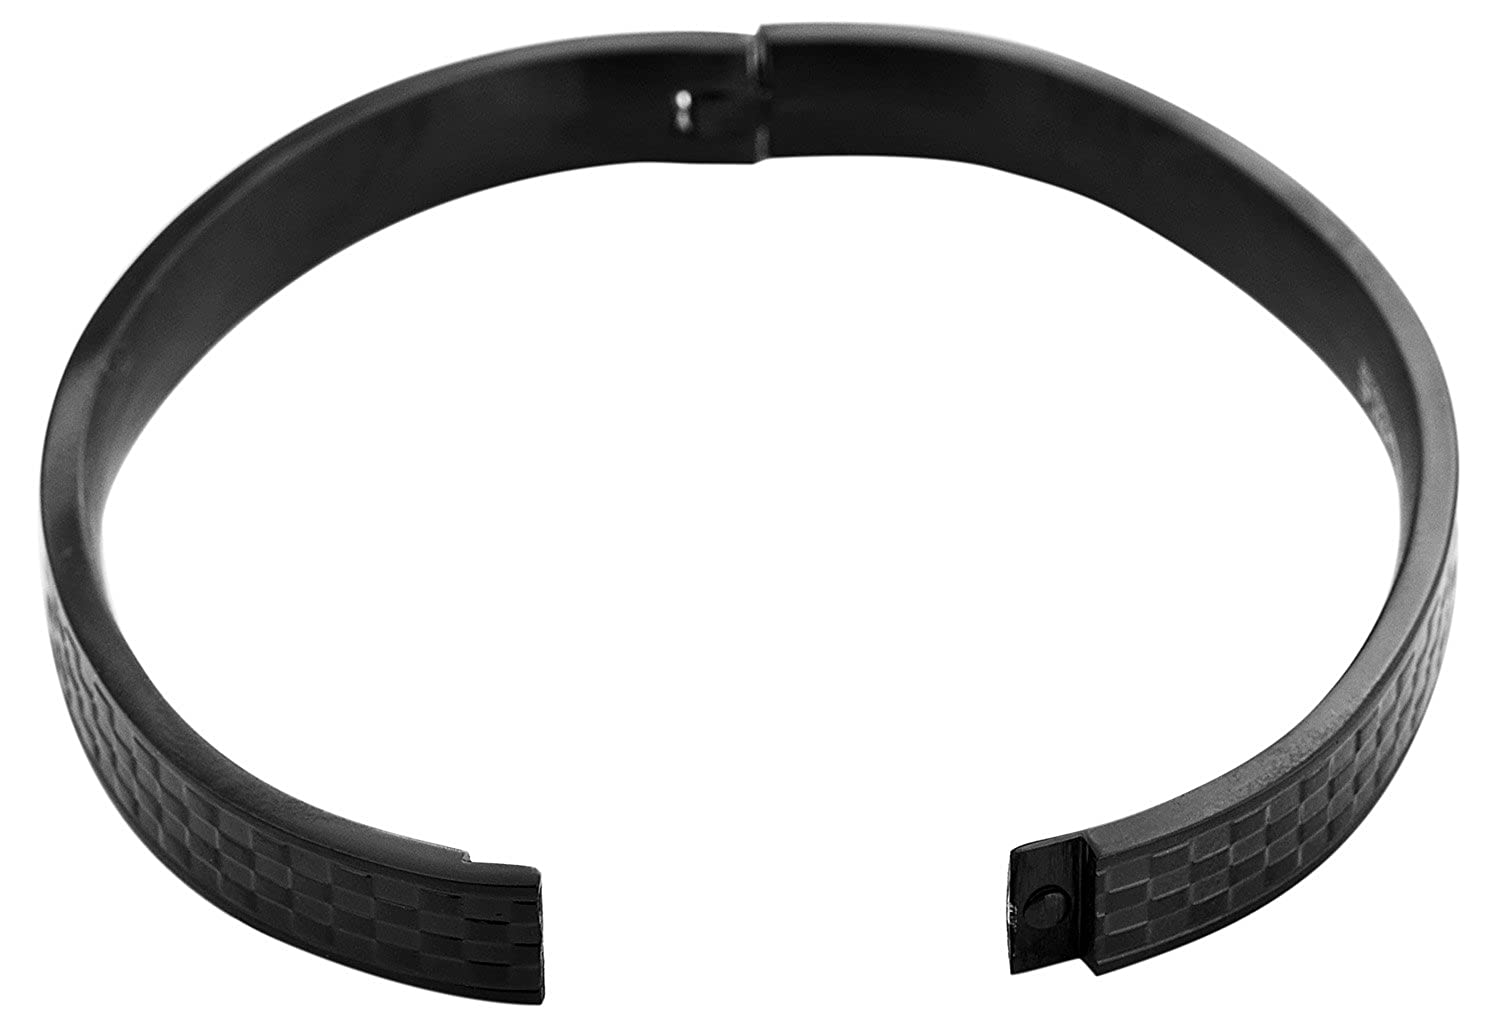 Edforce Blacked Out Stainless Steel Unisex Basket Weeve Pattern Oval Bangle Bracelet with Hidden Clasp, 64mm x 53mm